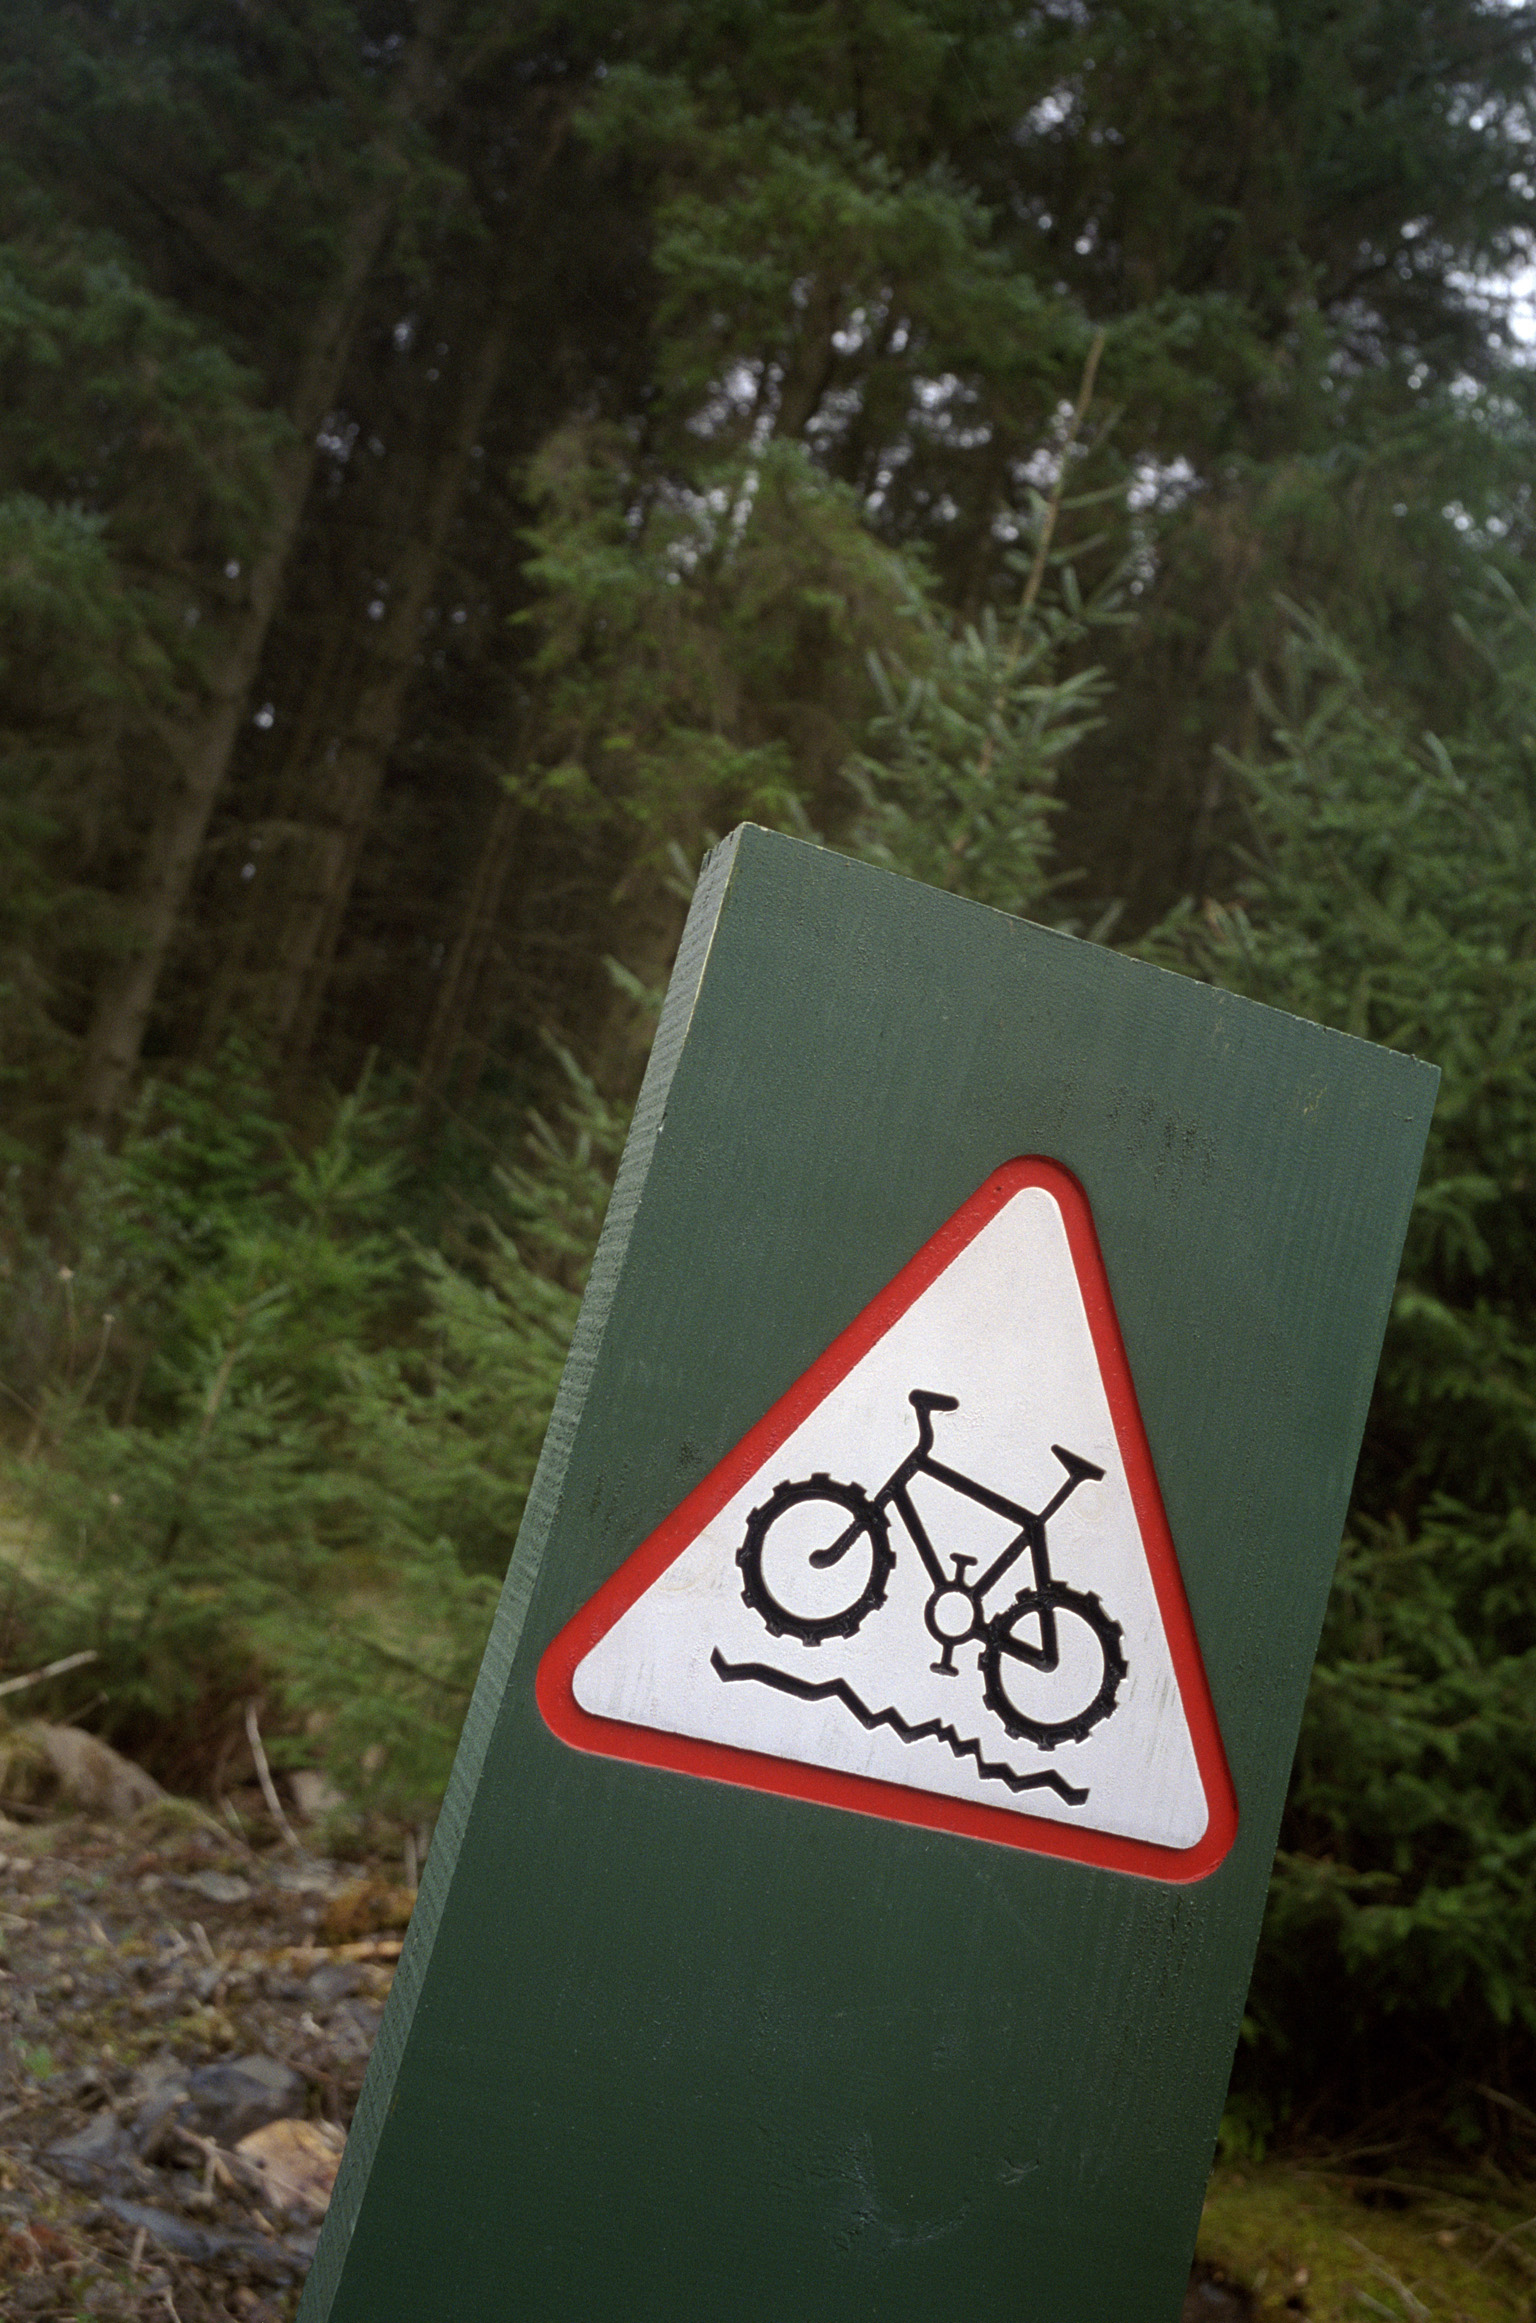 Cycle track sign on a marker showing uneven terrain marking the route of a recreational cycling track